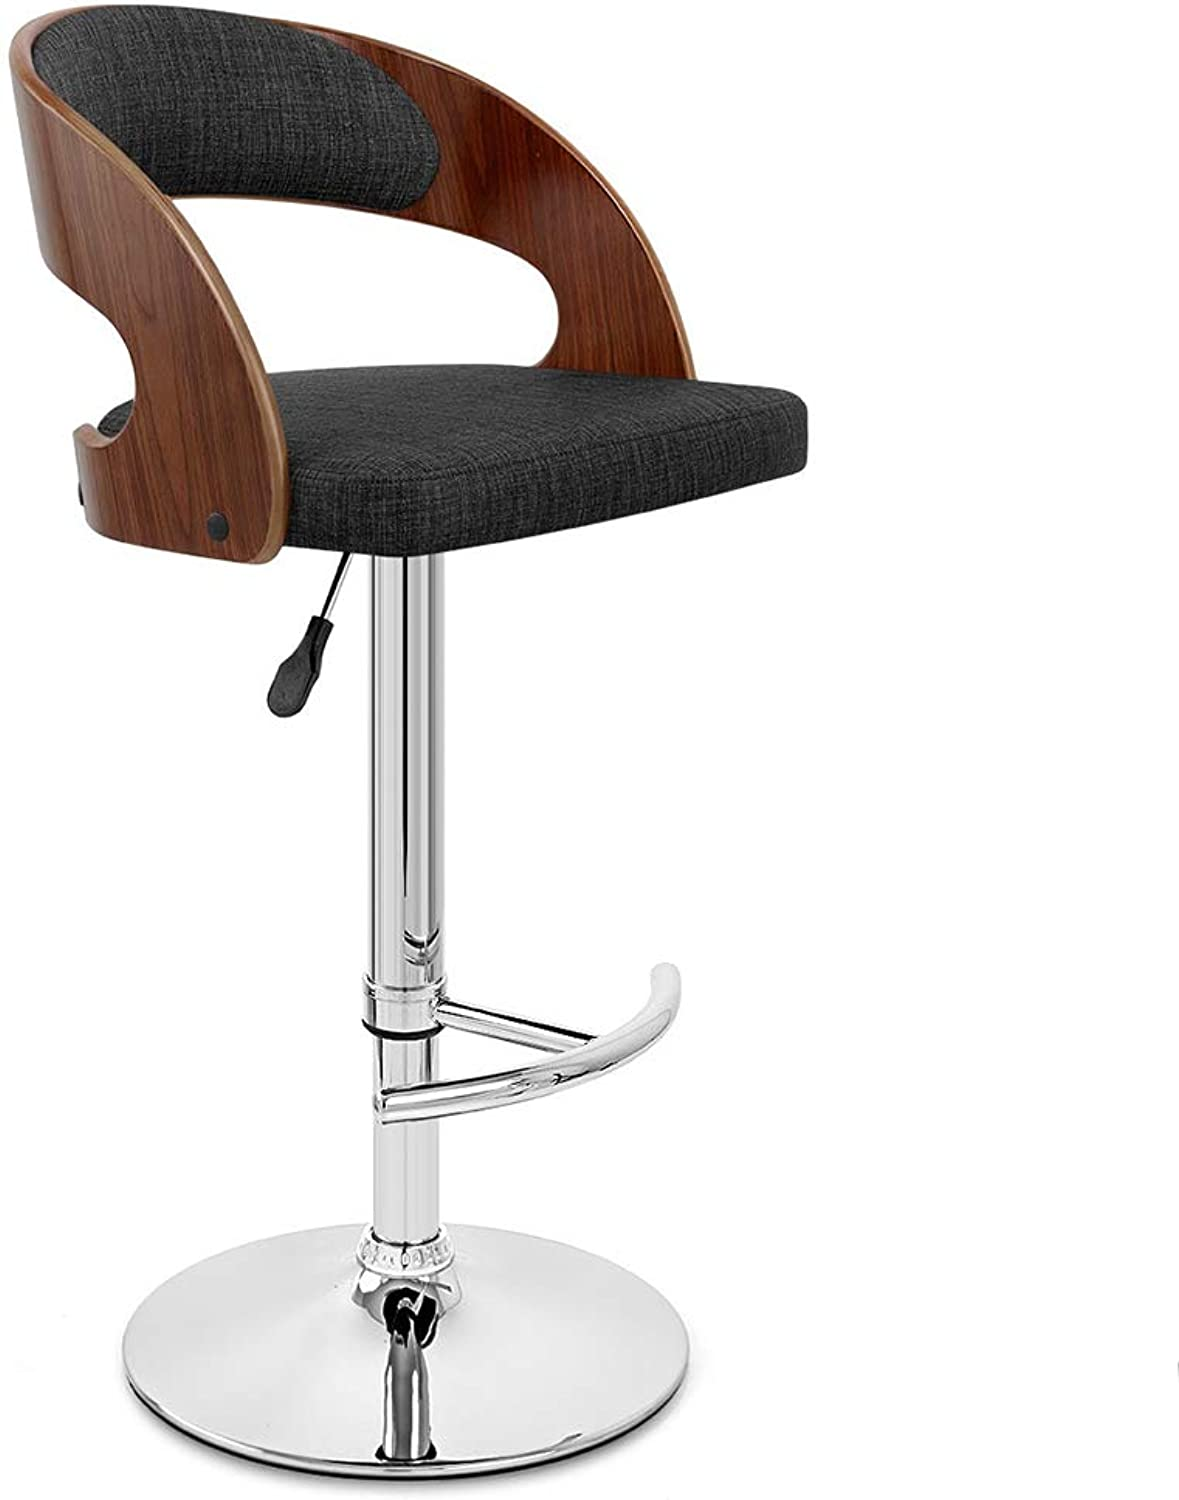 LIQICAI Bar Stool with Fabric Backrest and Seat Adjustable Height Swivel Stool Footrest Large Base, 3 colors Seat, 3 Chair Frame colors Optional (color   Black, Size   Brown Frame)